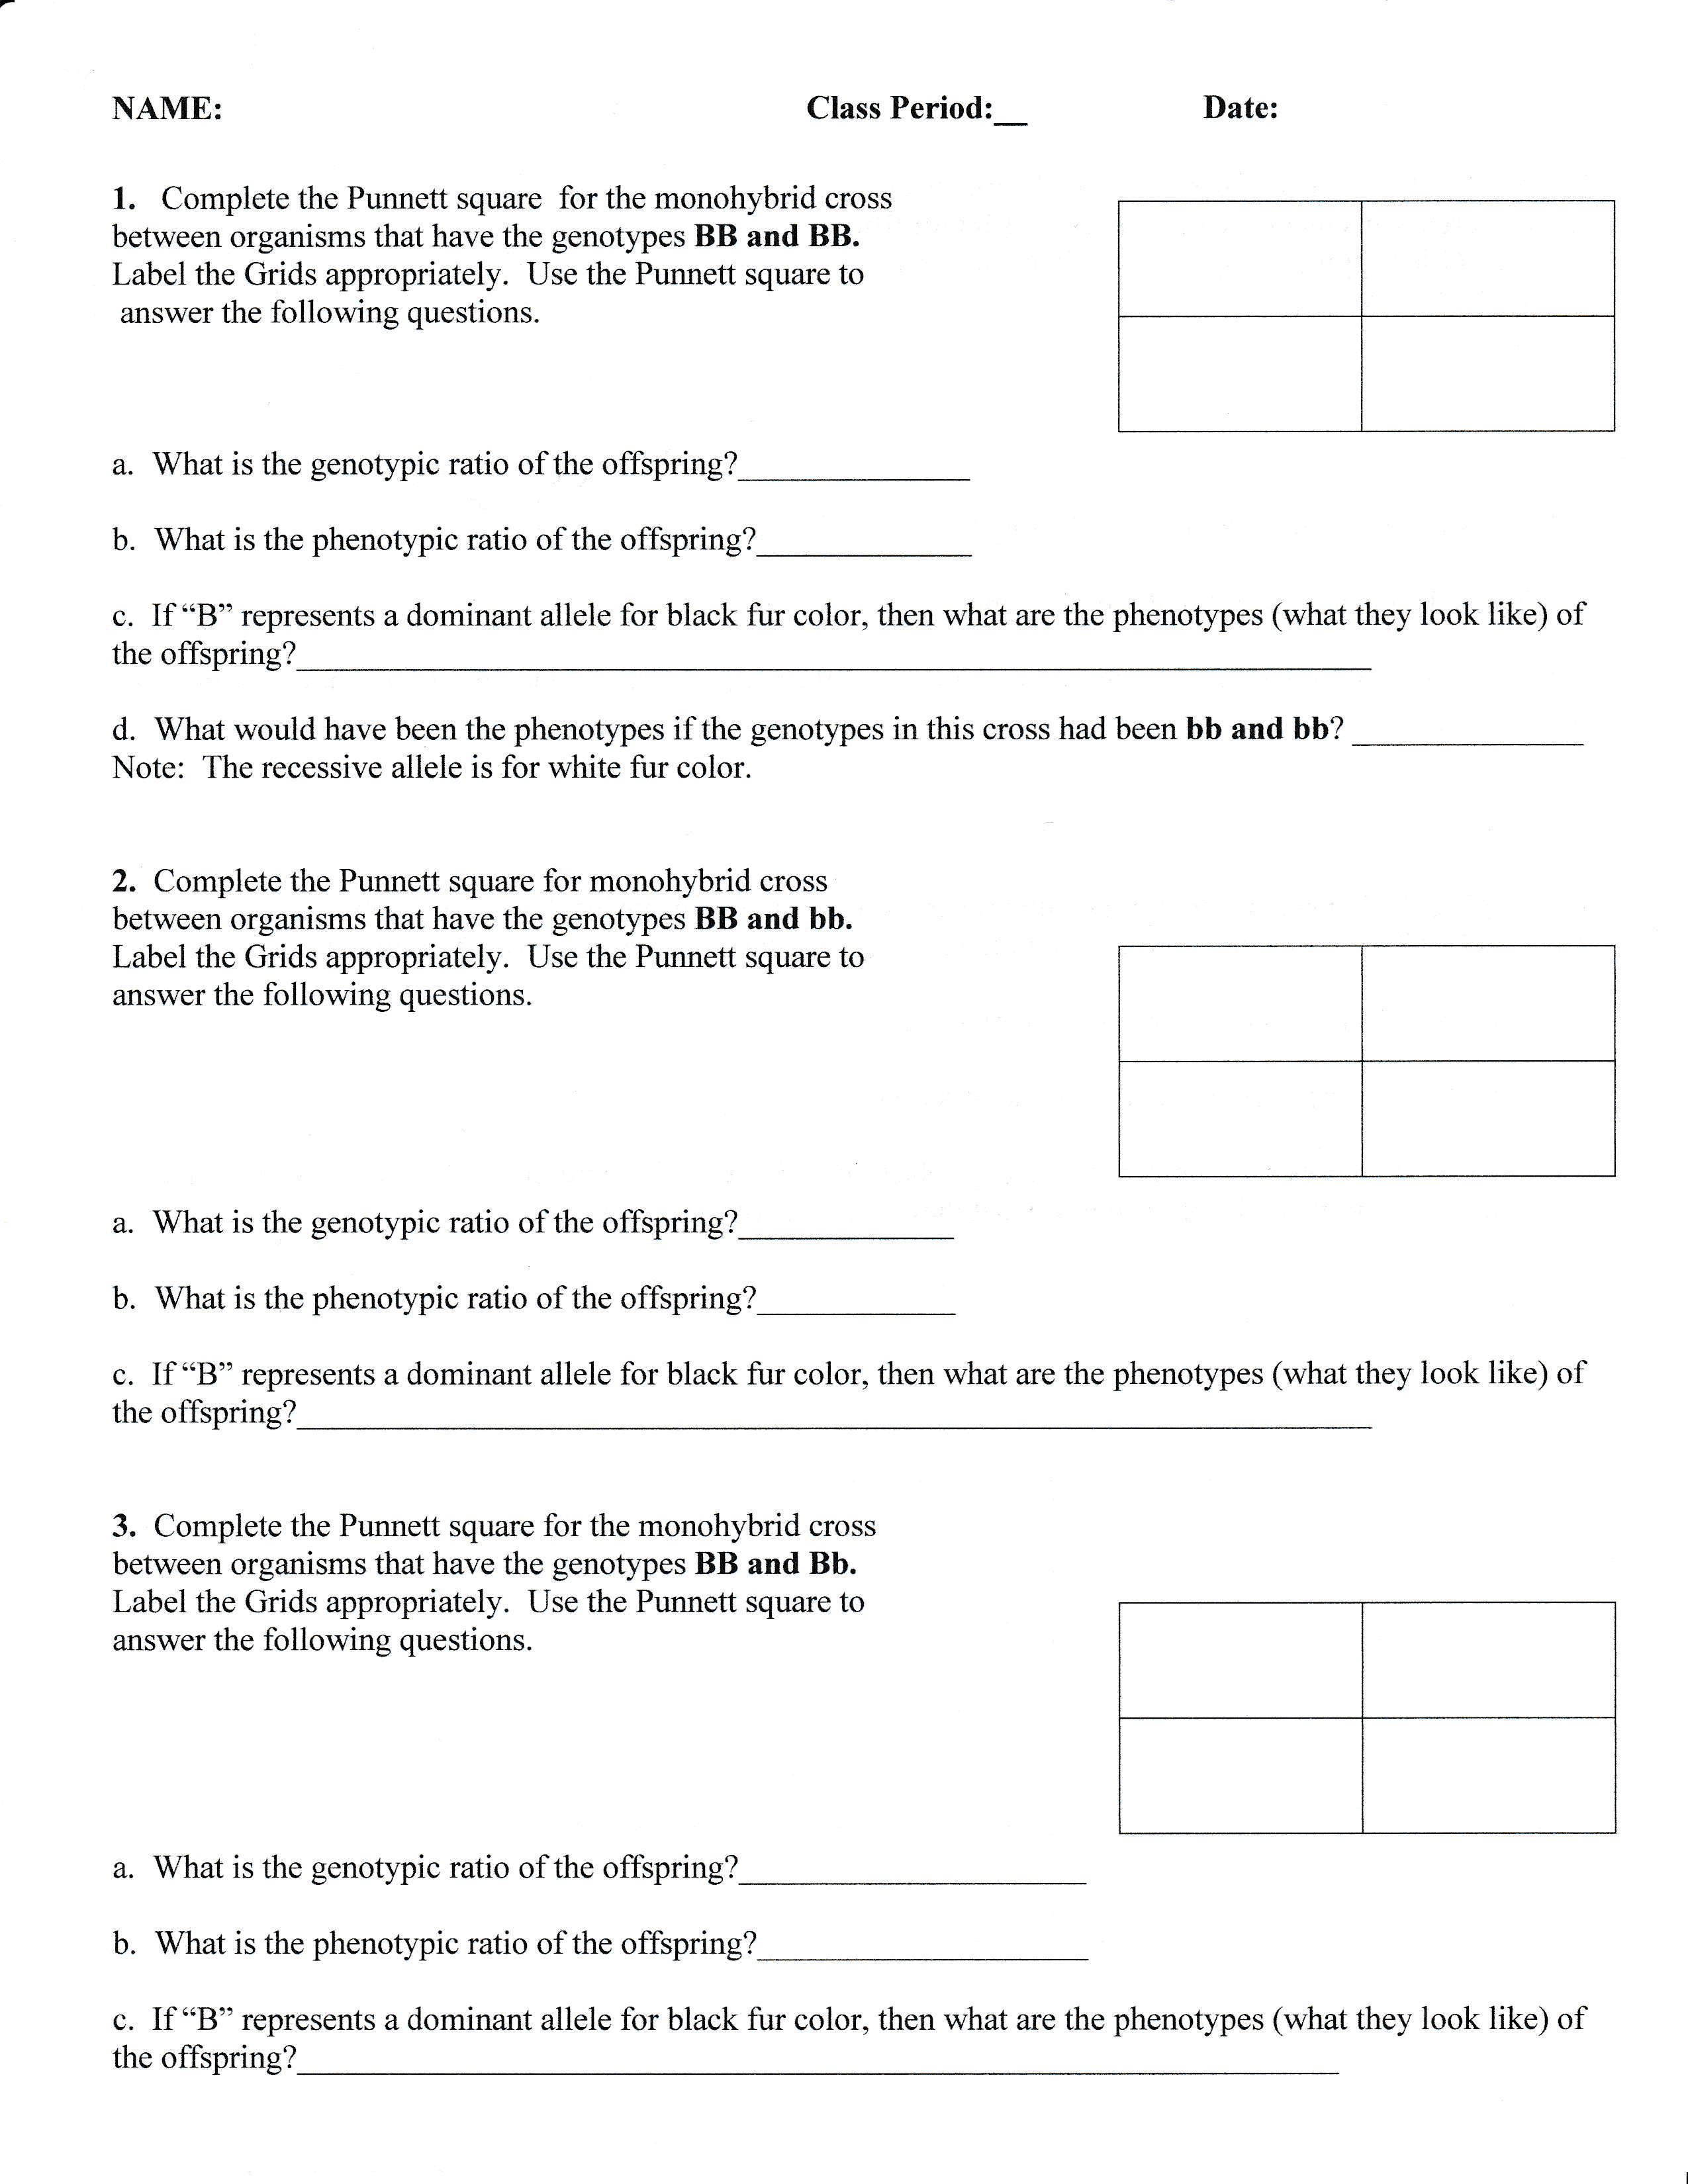 Punnett Squares Instruction Practice Amp Assignment 50 Pts